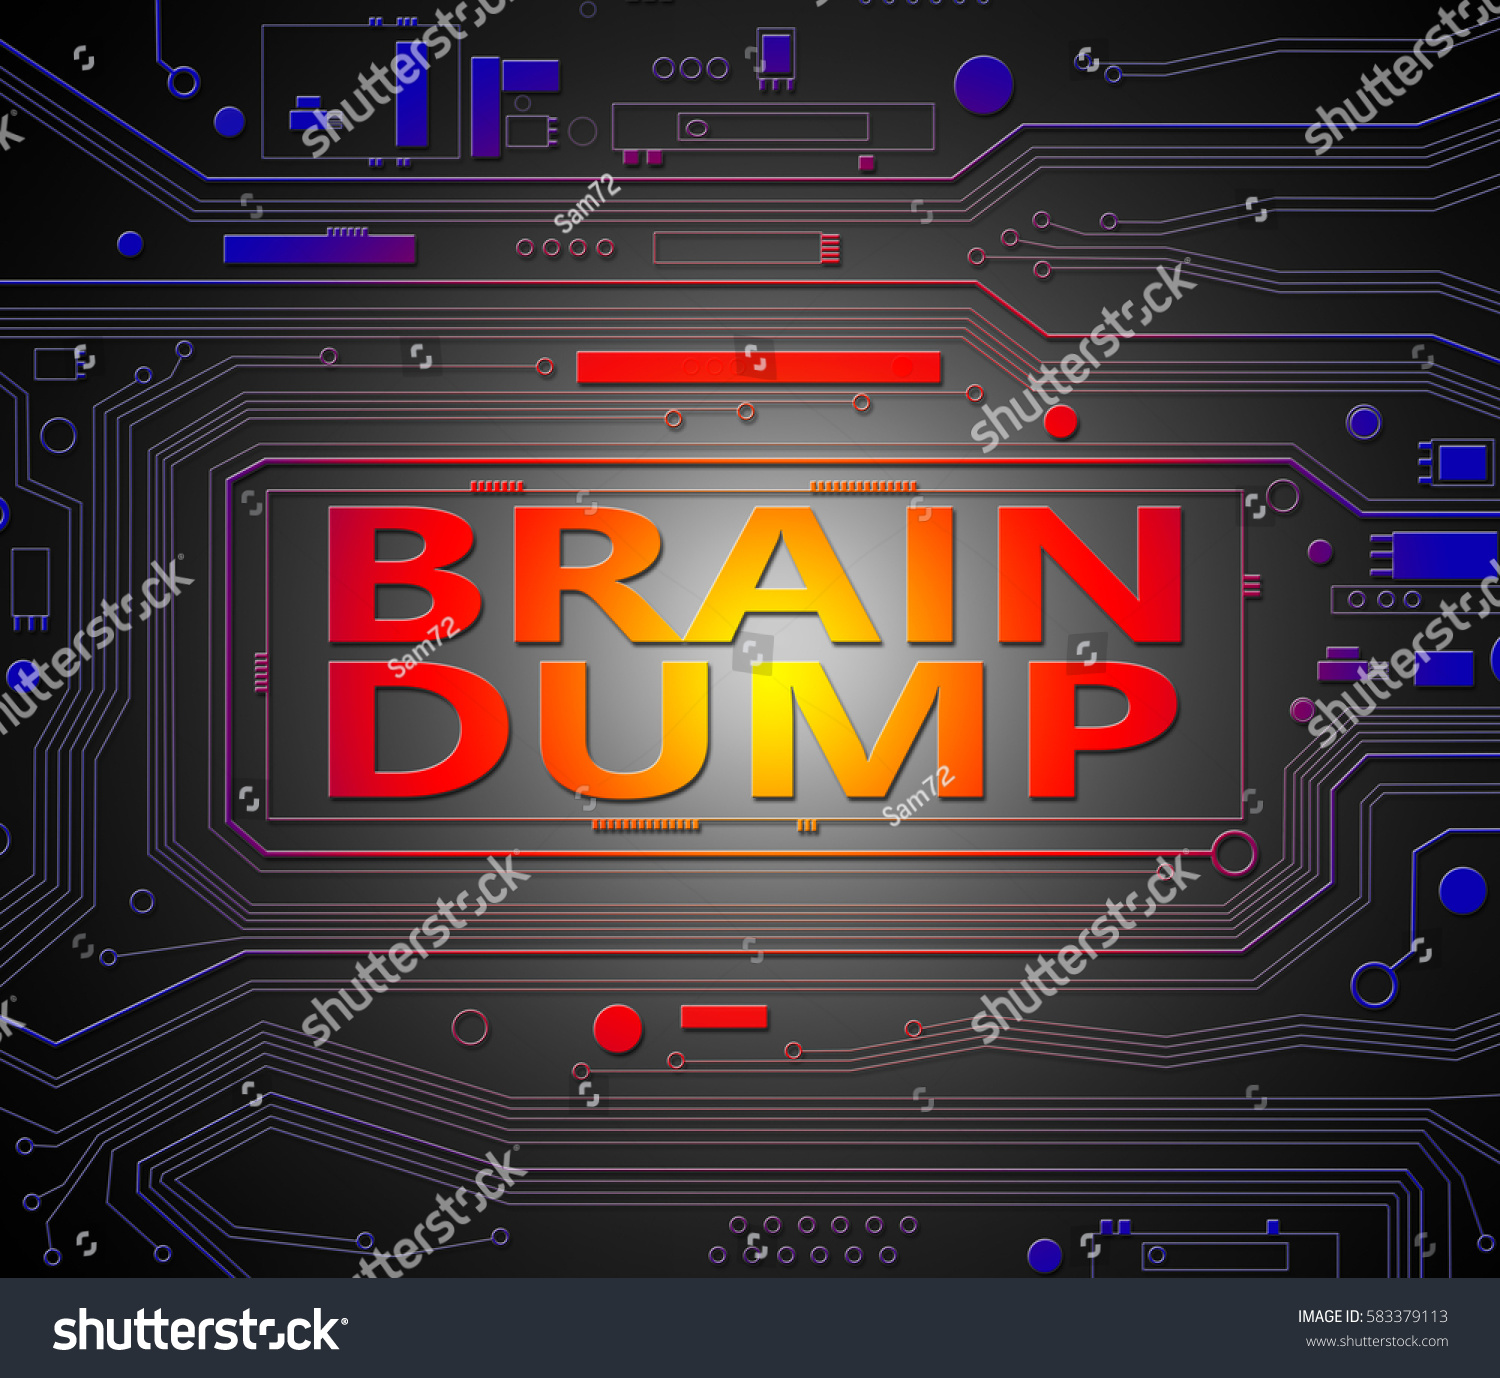 3 D Illustration Depicting Printed Circuit Board Stock Pcb The Printedcircuitboard 3d Royalty Free Photography Components With A Brain Dump Concept